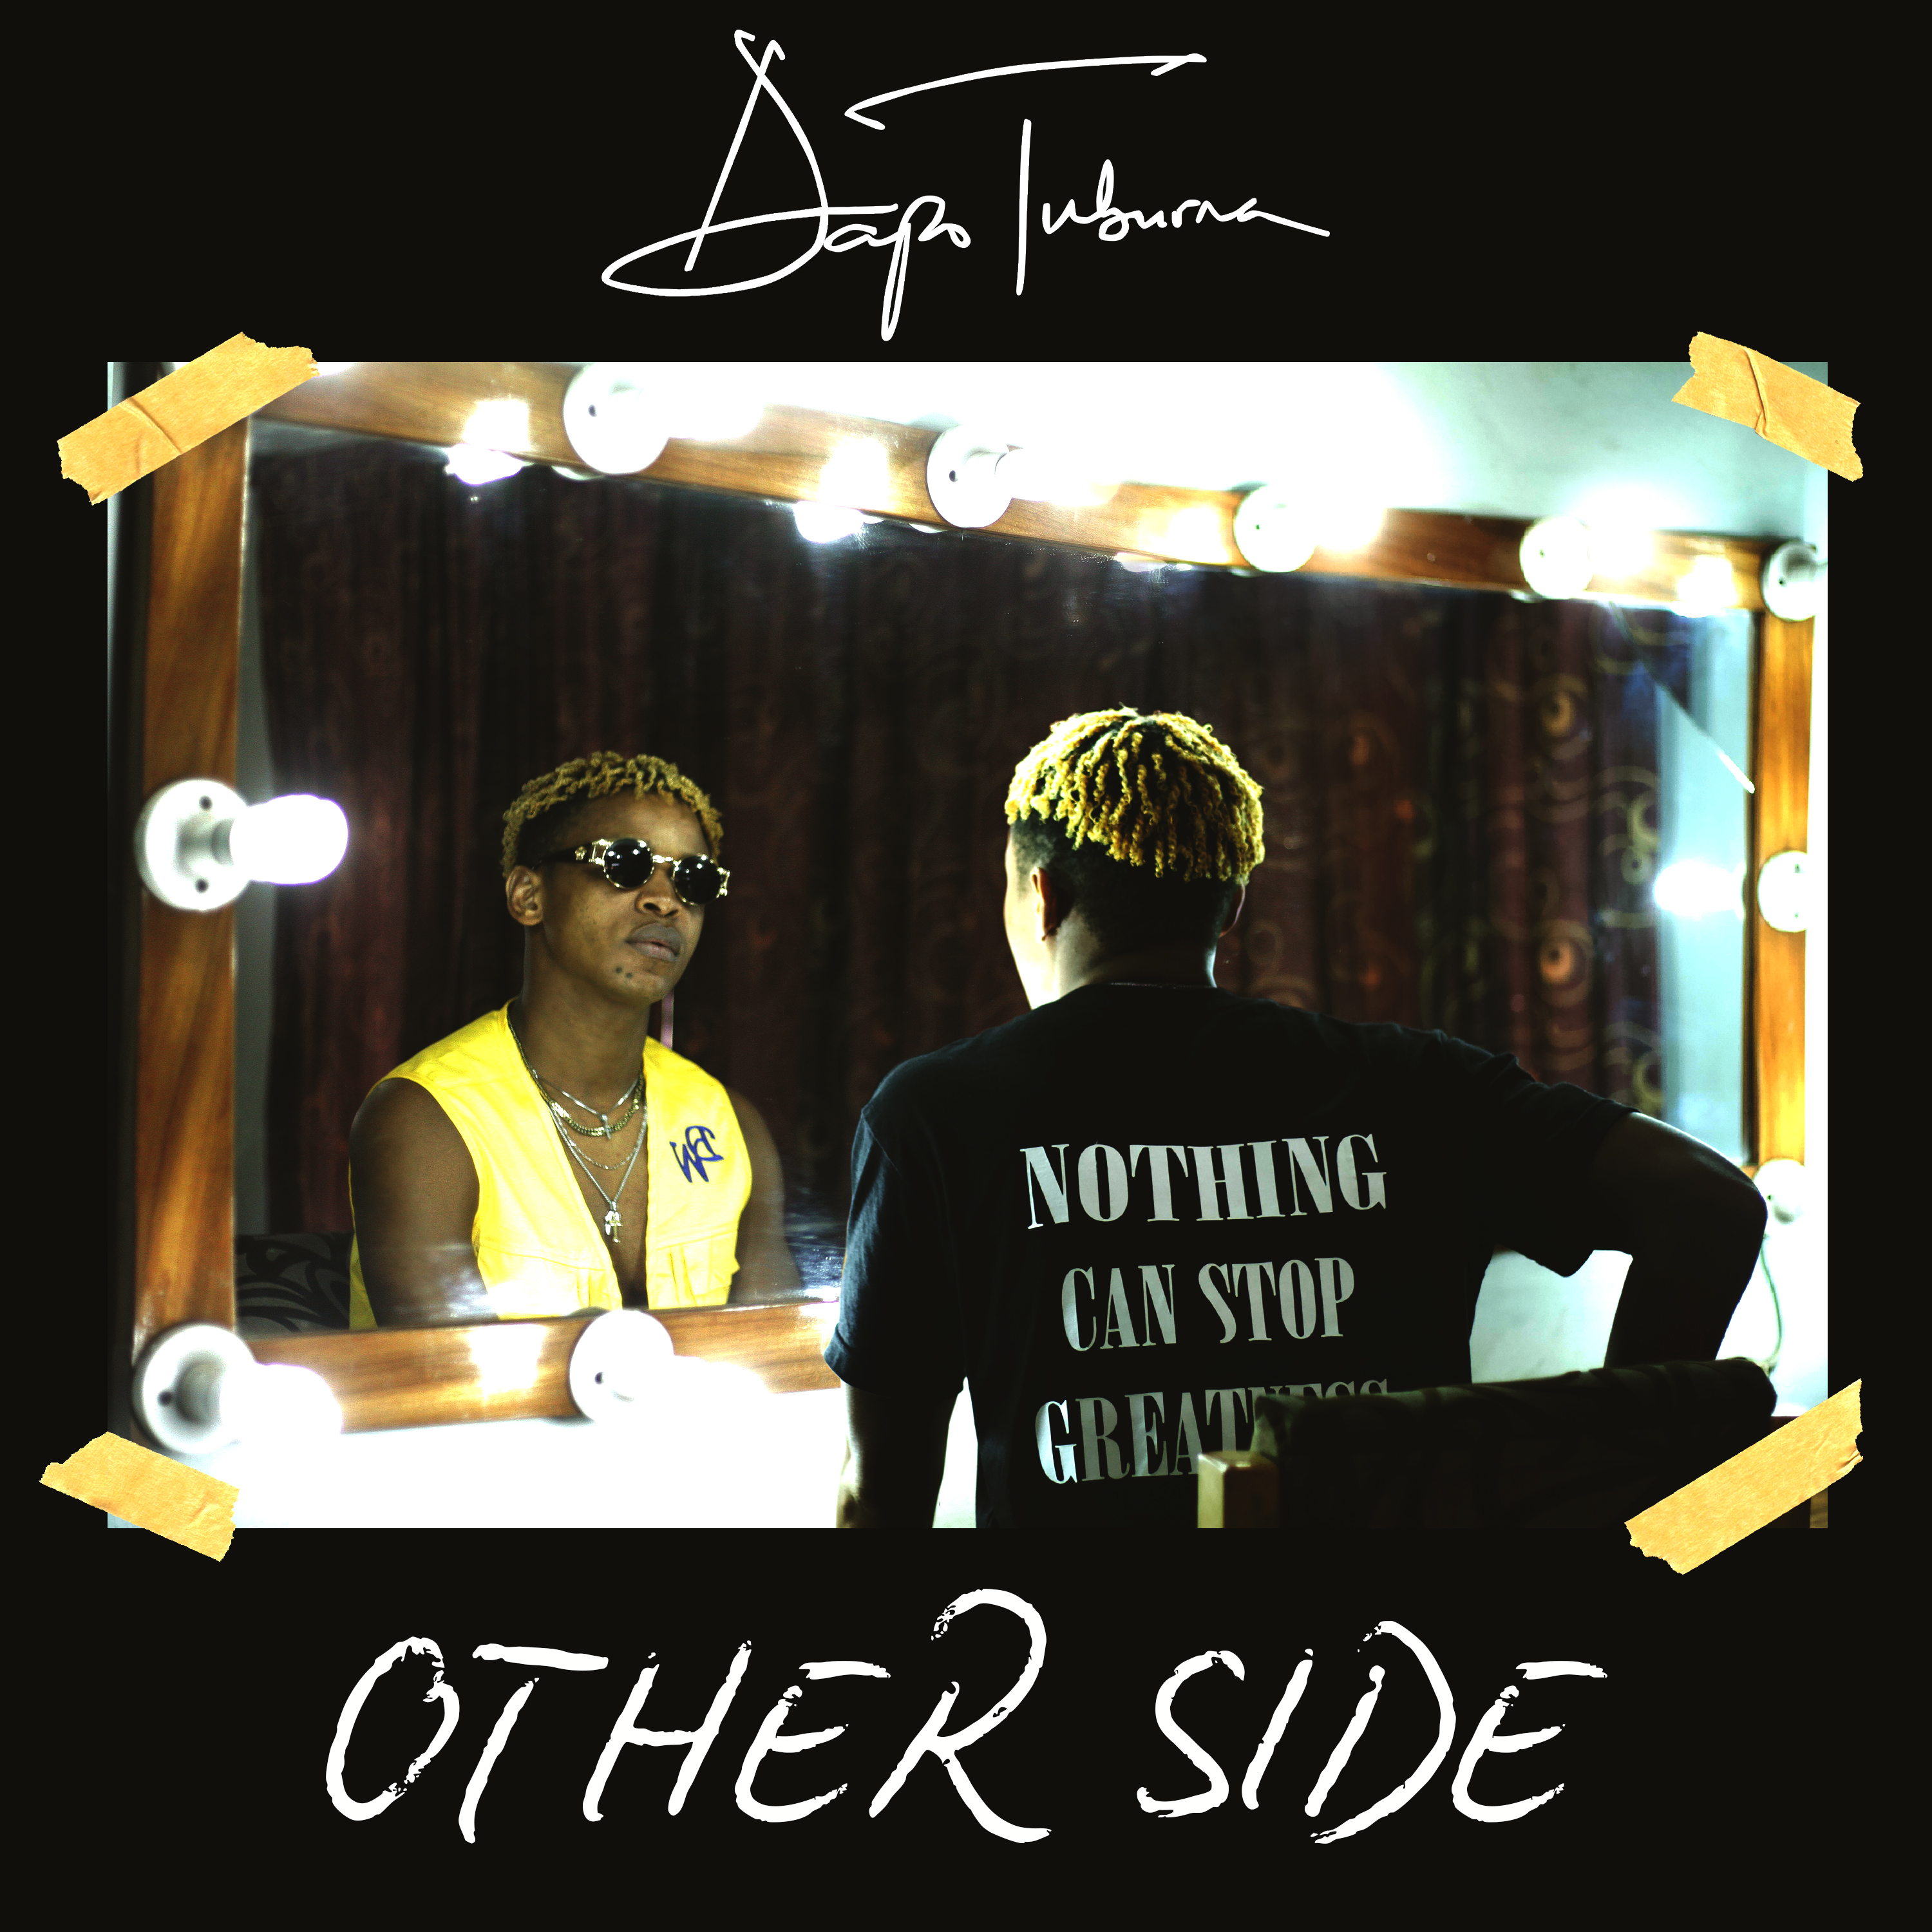 Dapo Tuburna - OTHER SIDE (prod. by Yung Willis) Artwork | AceWorldTeam.com